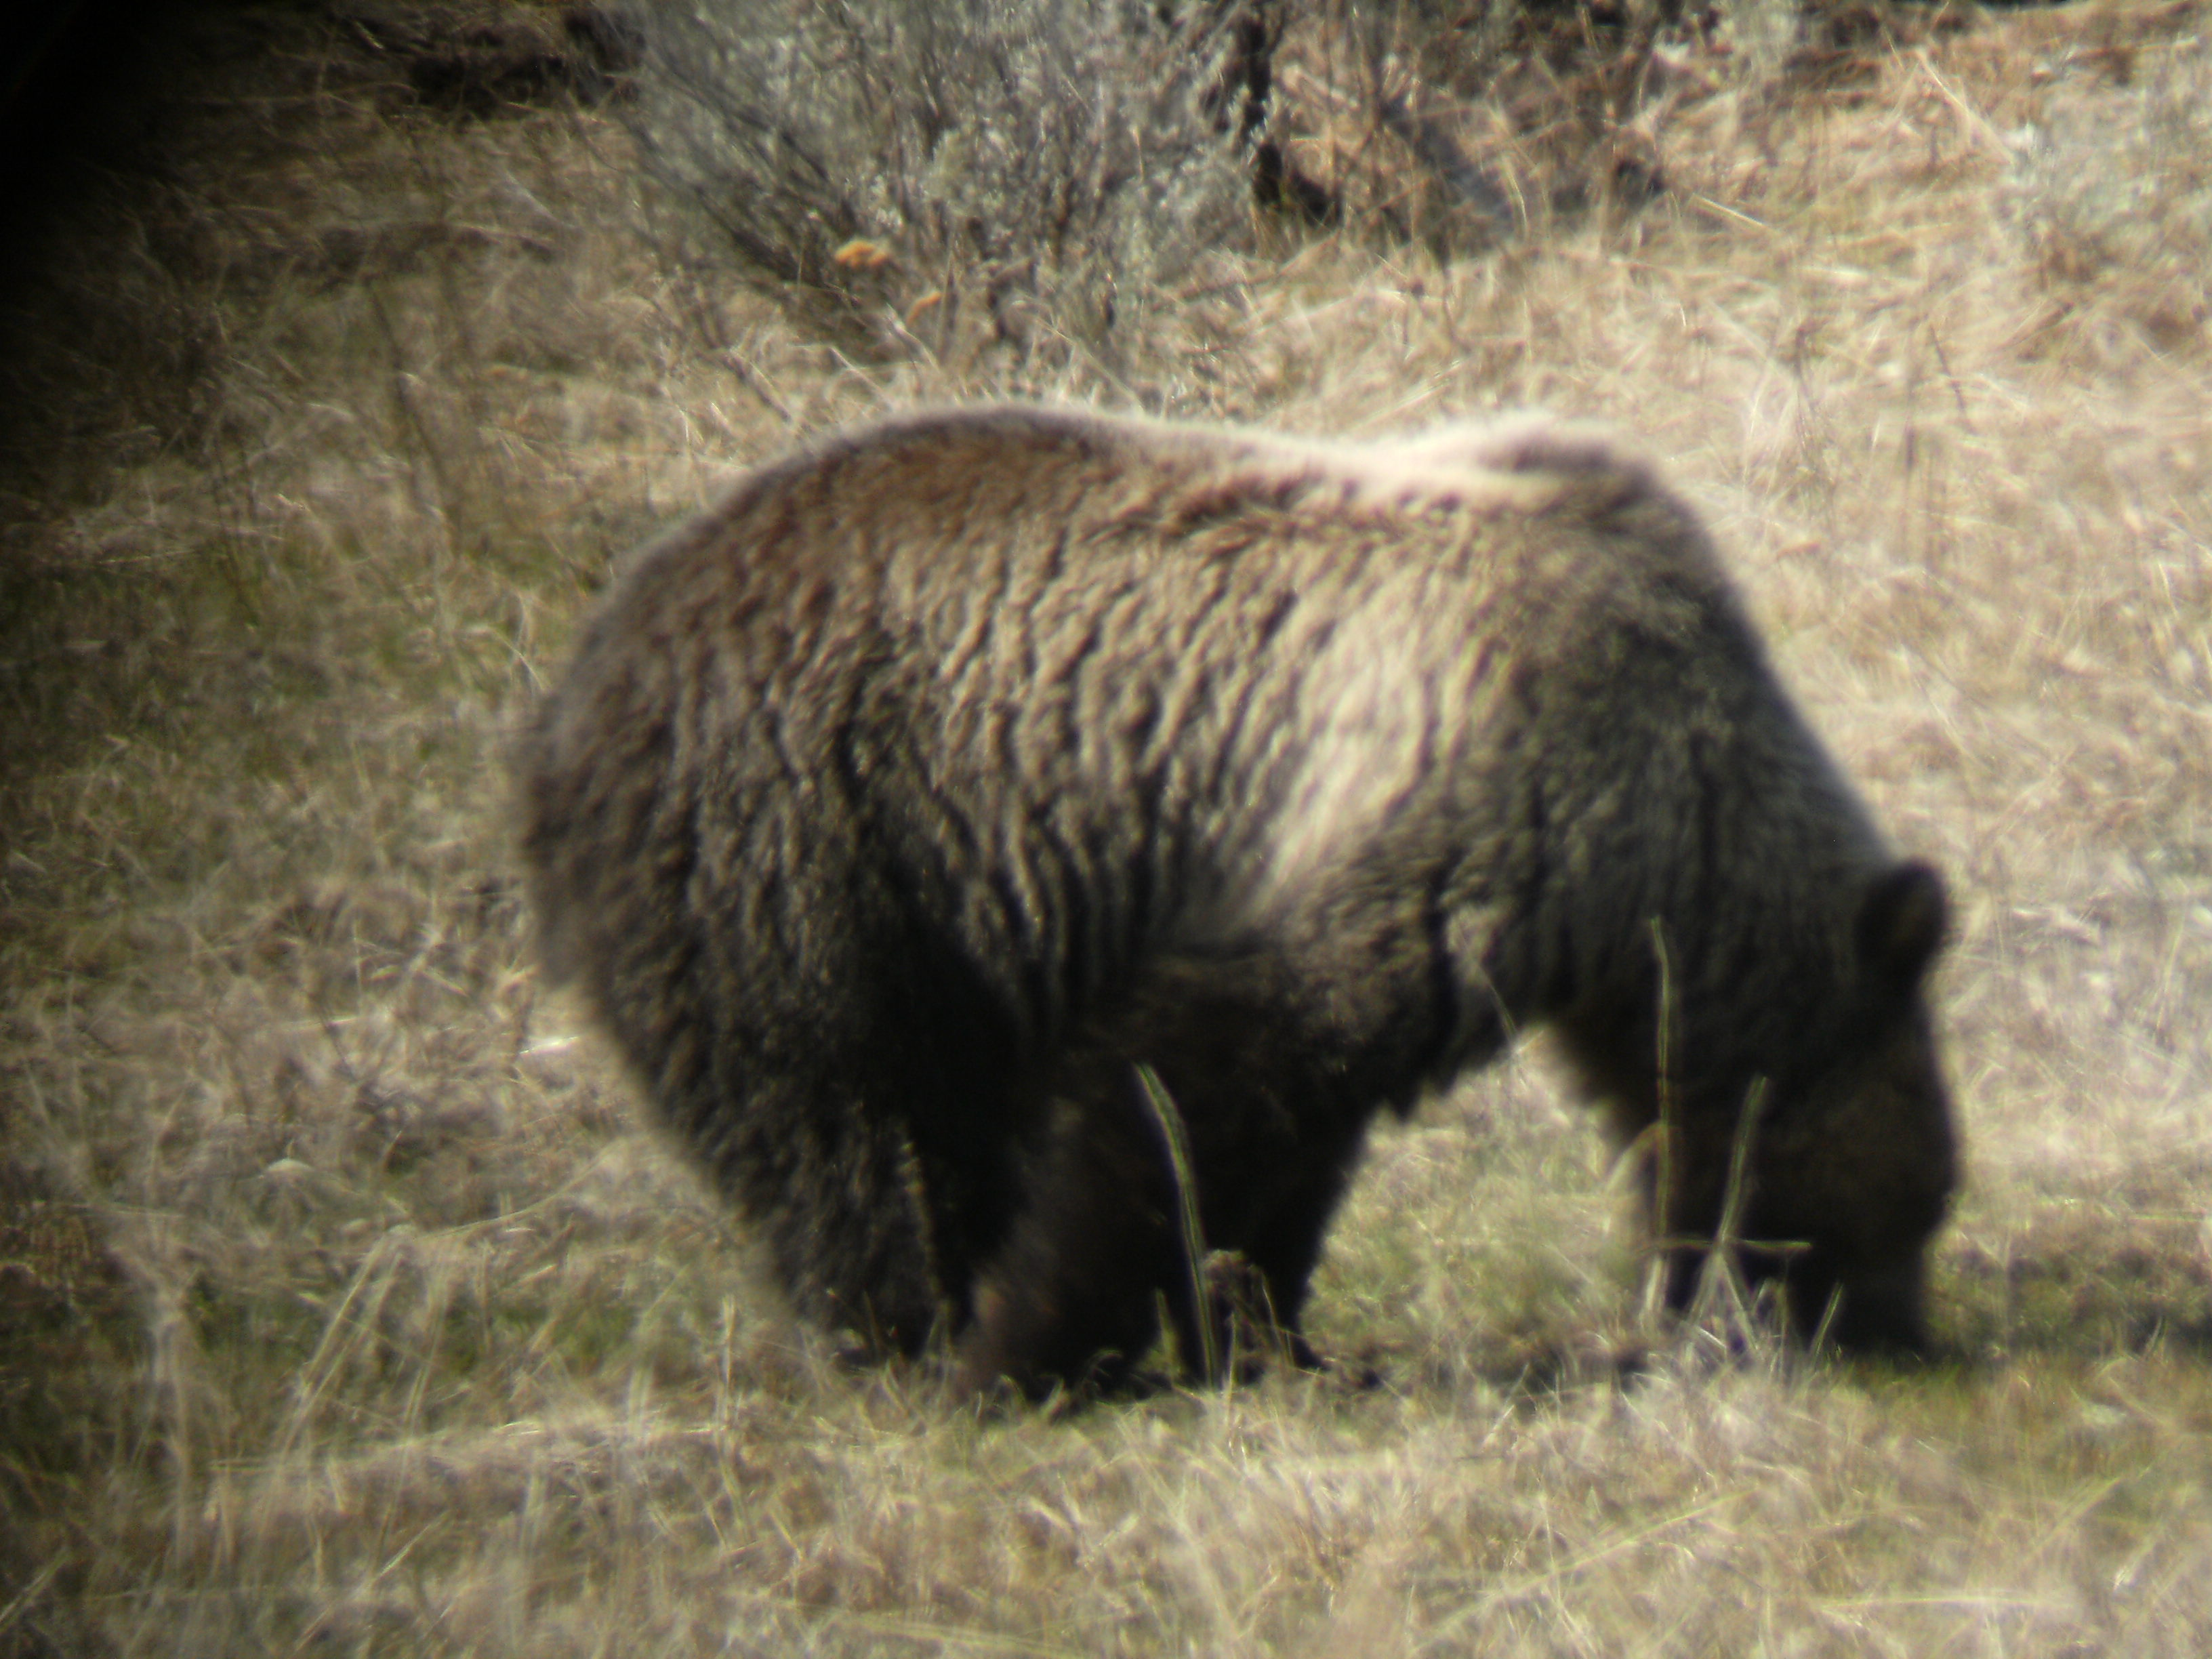 This grizzly spent hours upturning Bison paddies for insects underneath